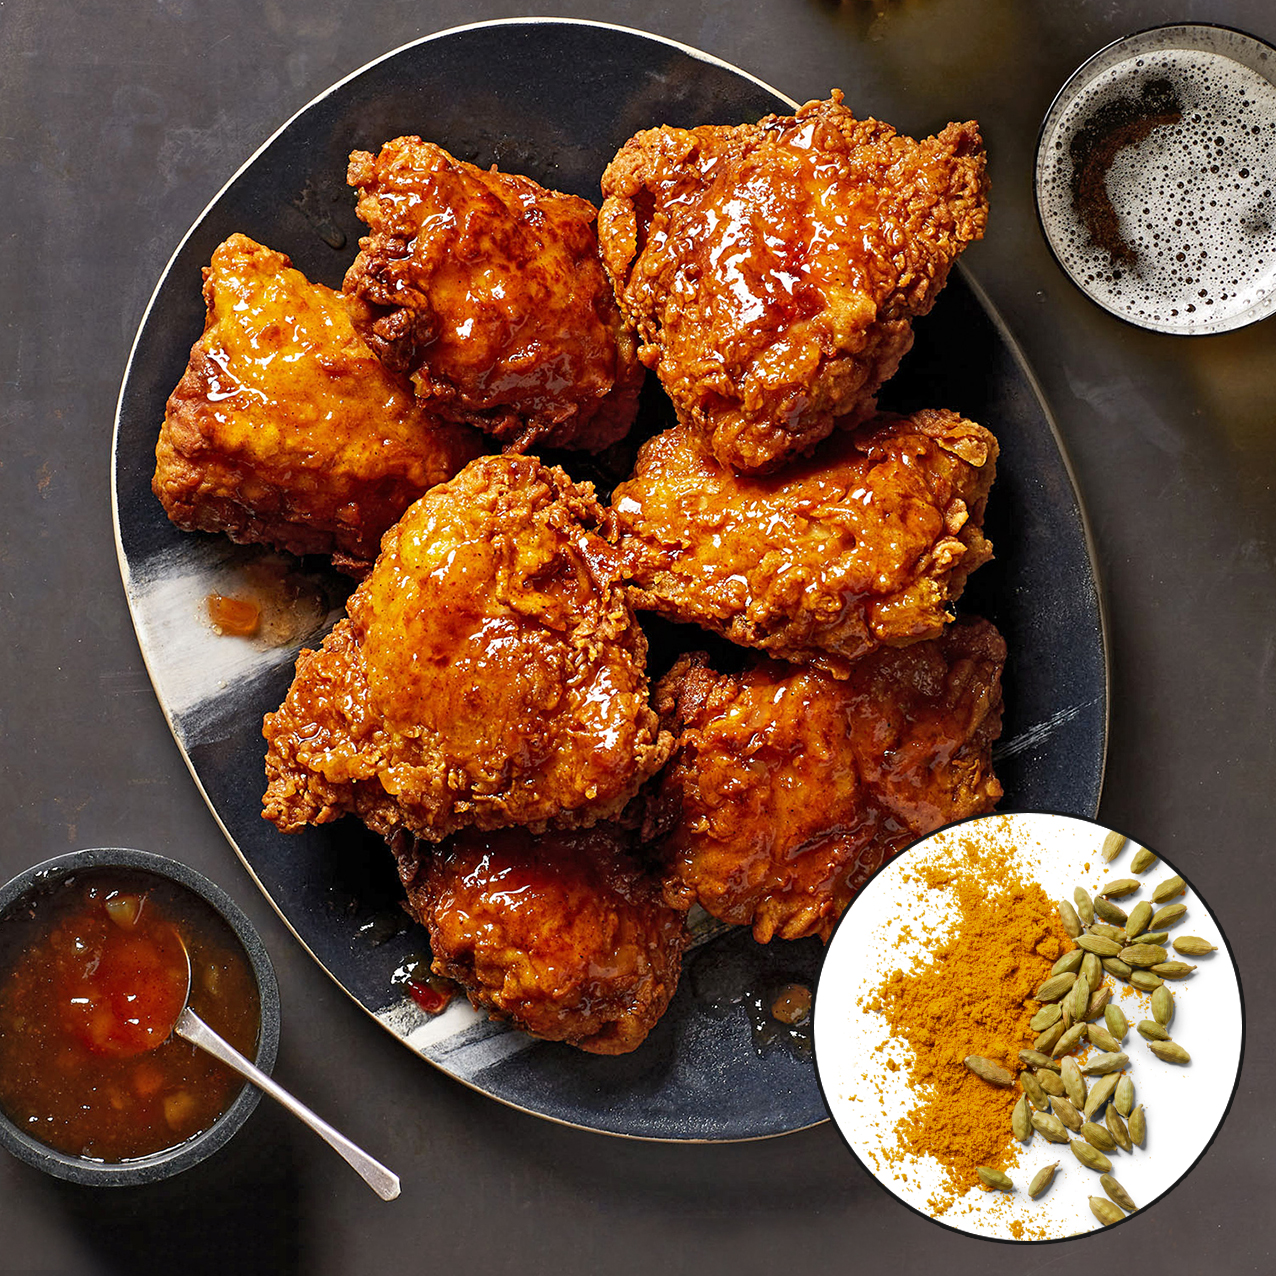 curry and cardamom fried chicken with spices inset